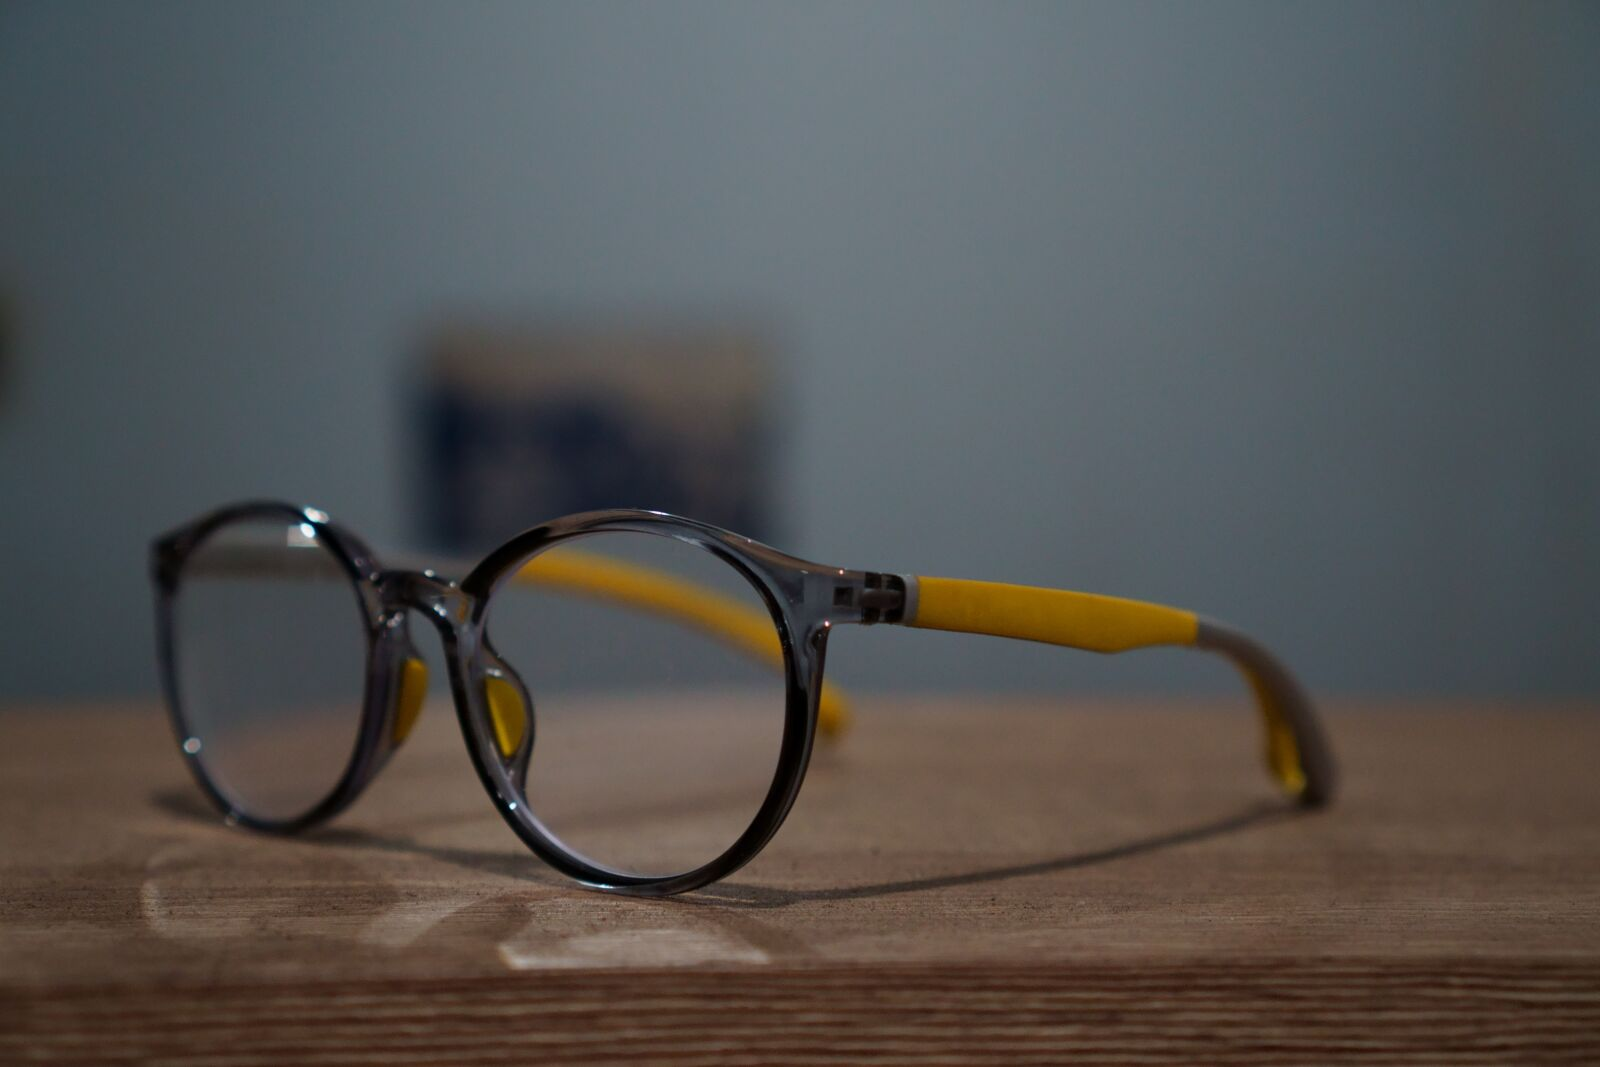 """Sony a6400 sample photo. """"Spectacles, glasses, eyeglasses"""" photography"""